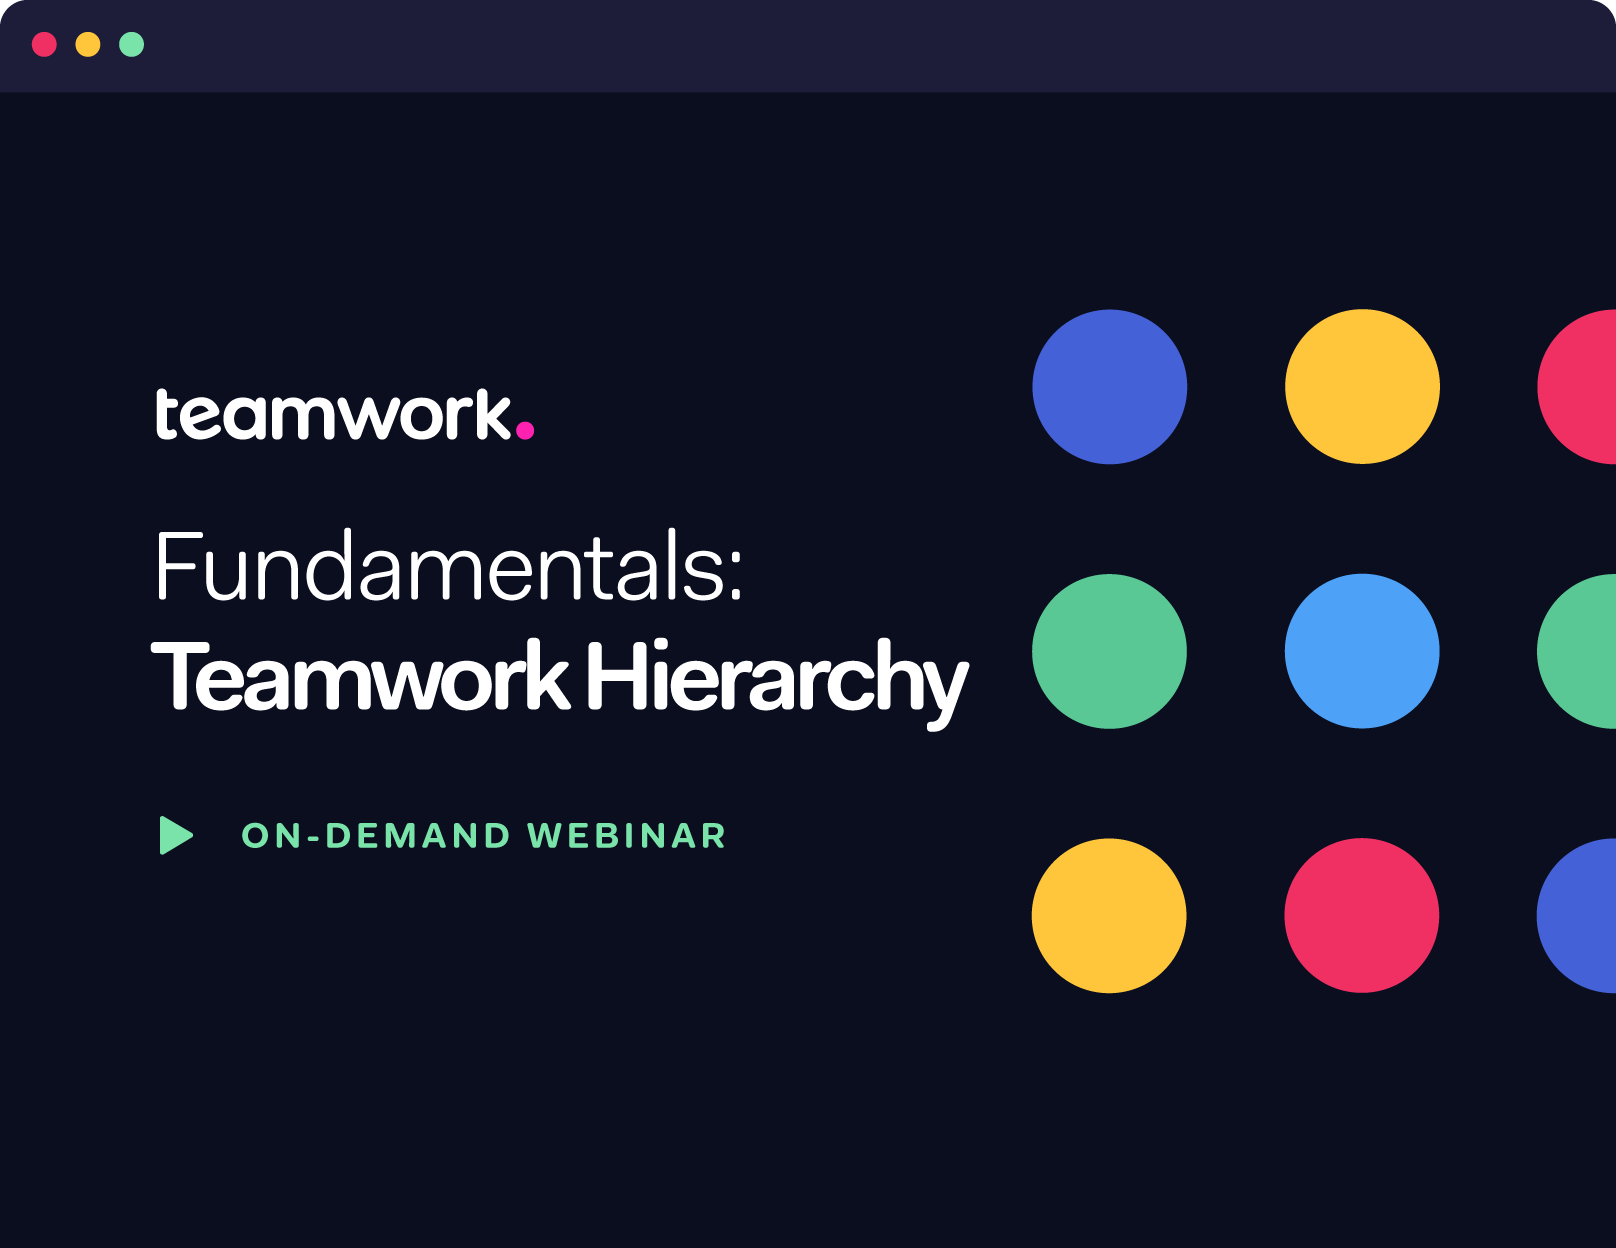 Fundamentals: Teamwork Hierarchy